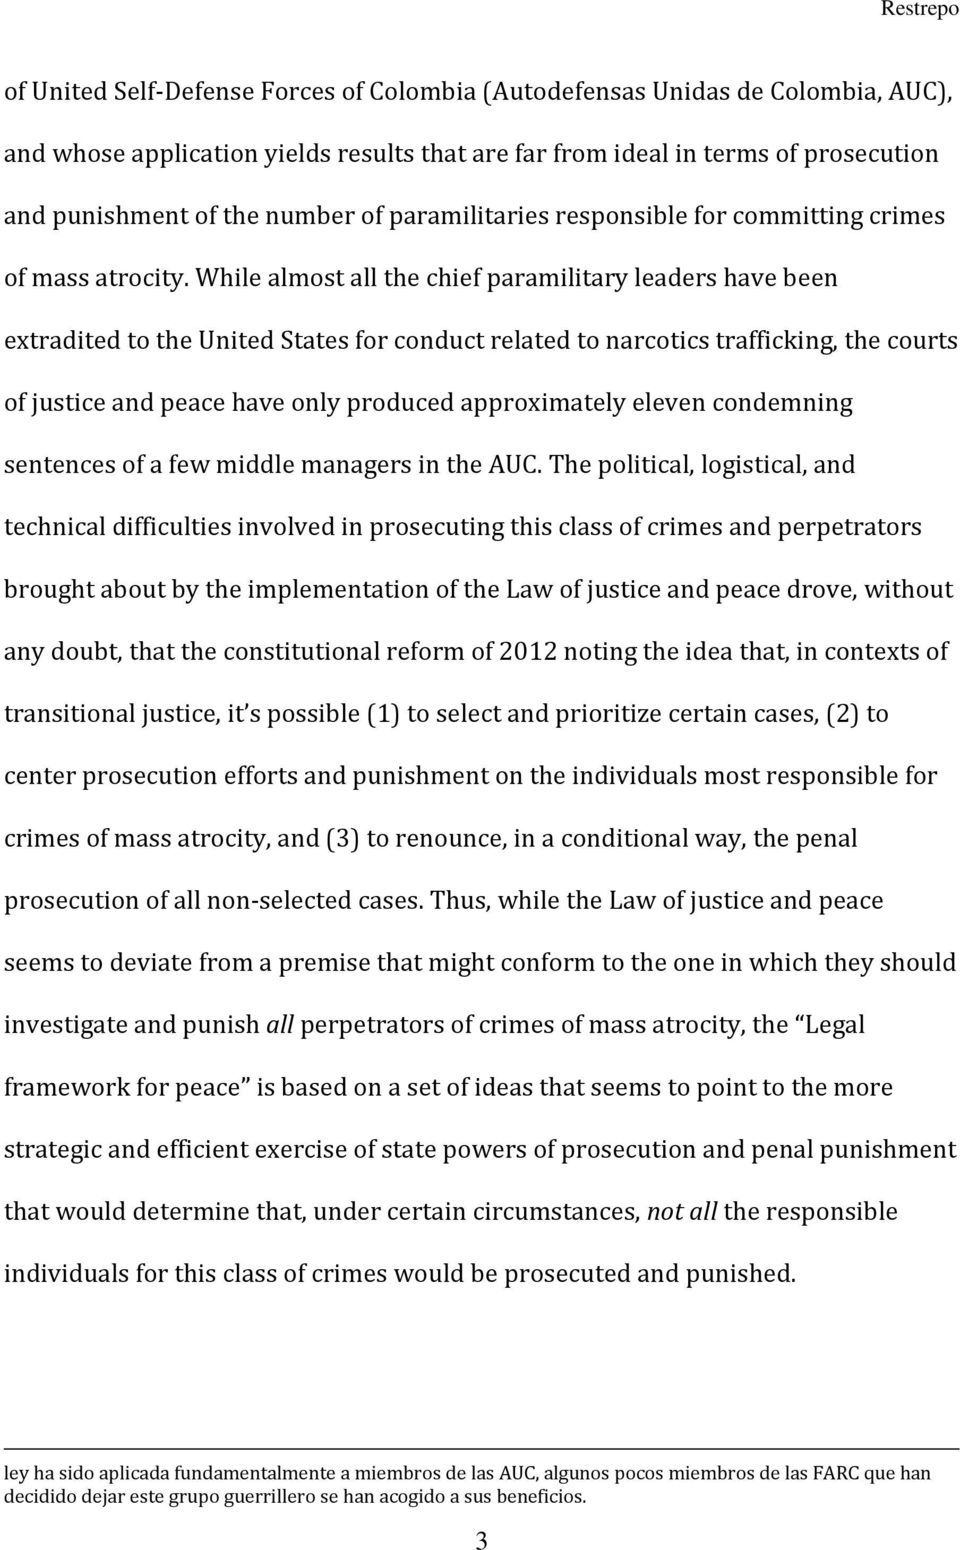 While almost all the chief paramilitary leaders have been extradited to the United States for conduct related to narcotics trafficking, the courts of justice and peace have only produced